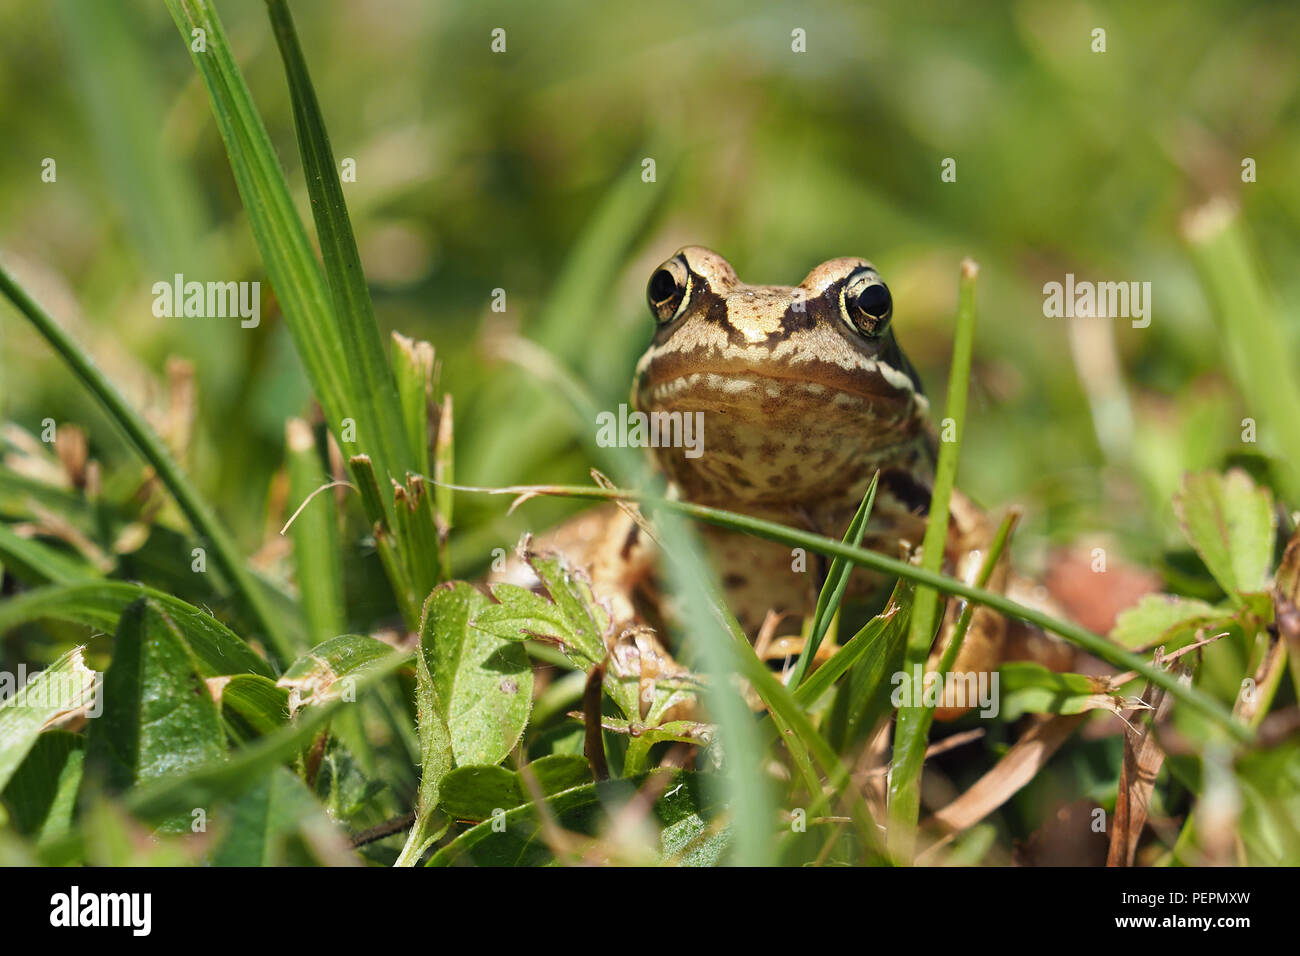 Young Common Frog (Rana temporaria) at rest in grass. Tipperary, Ireland - Stock Image